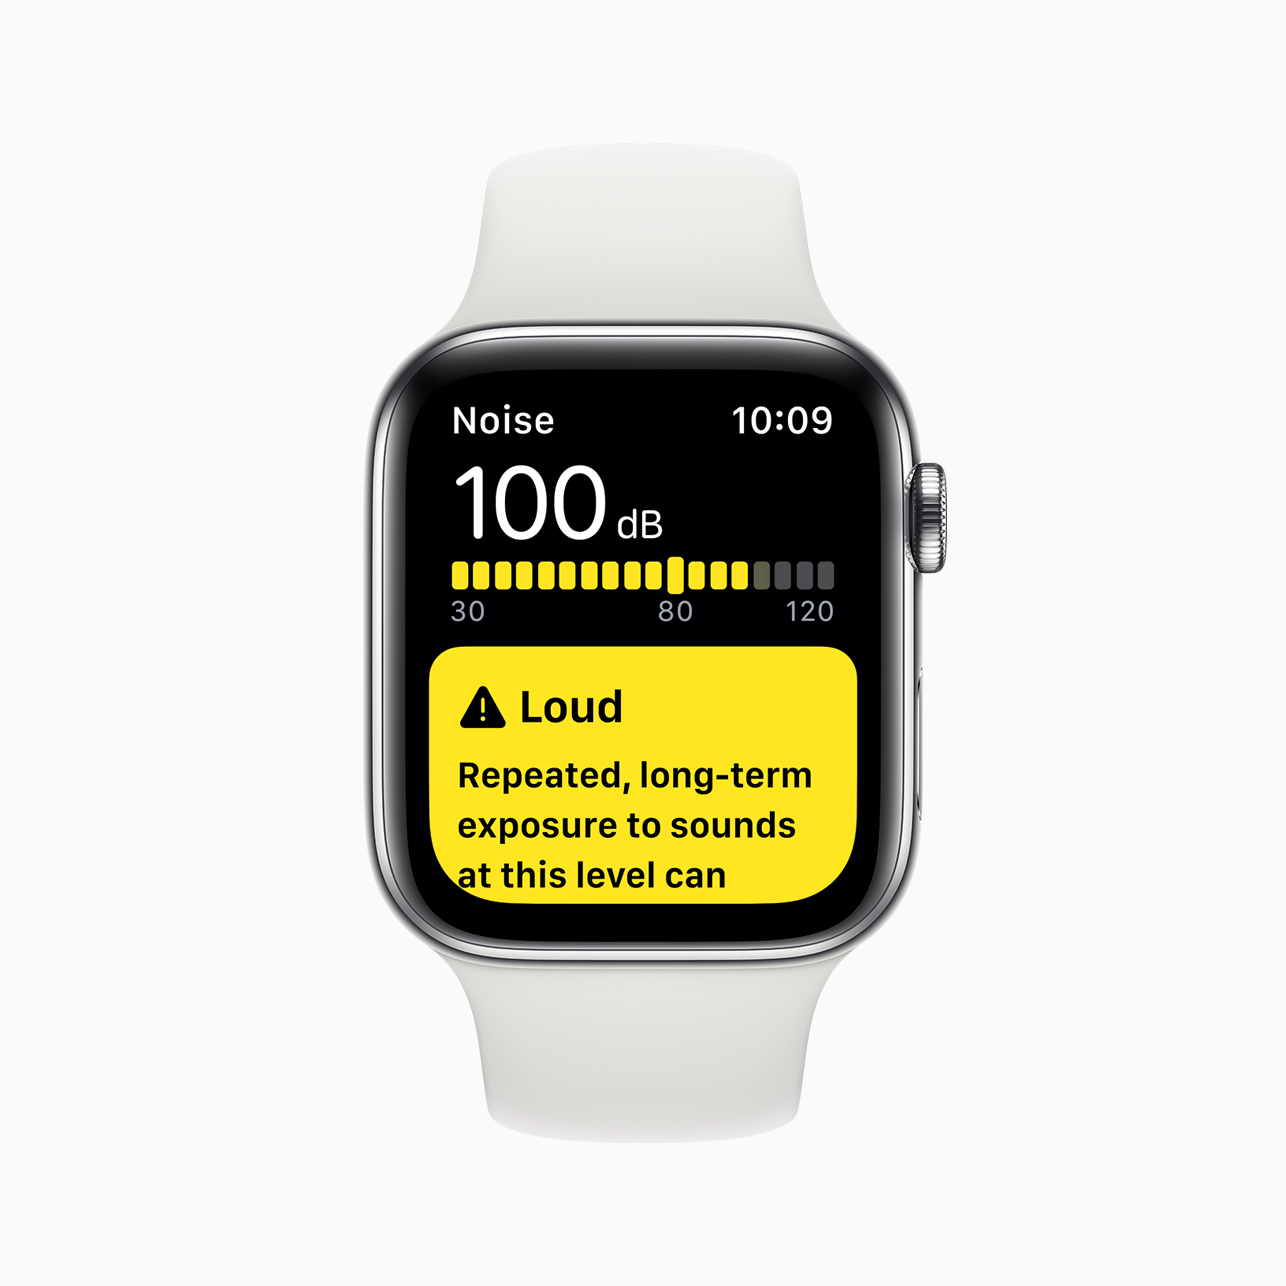 Apple Watch Series 5 Noise App Screen 091019